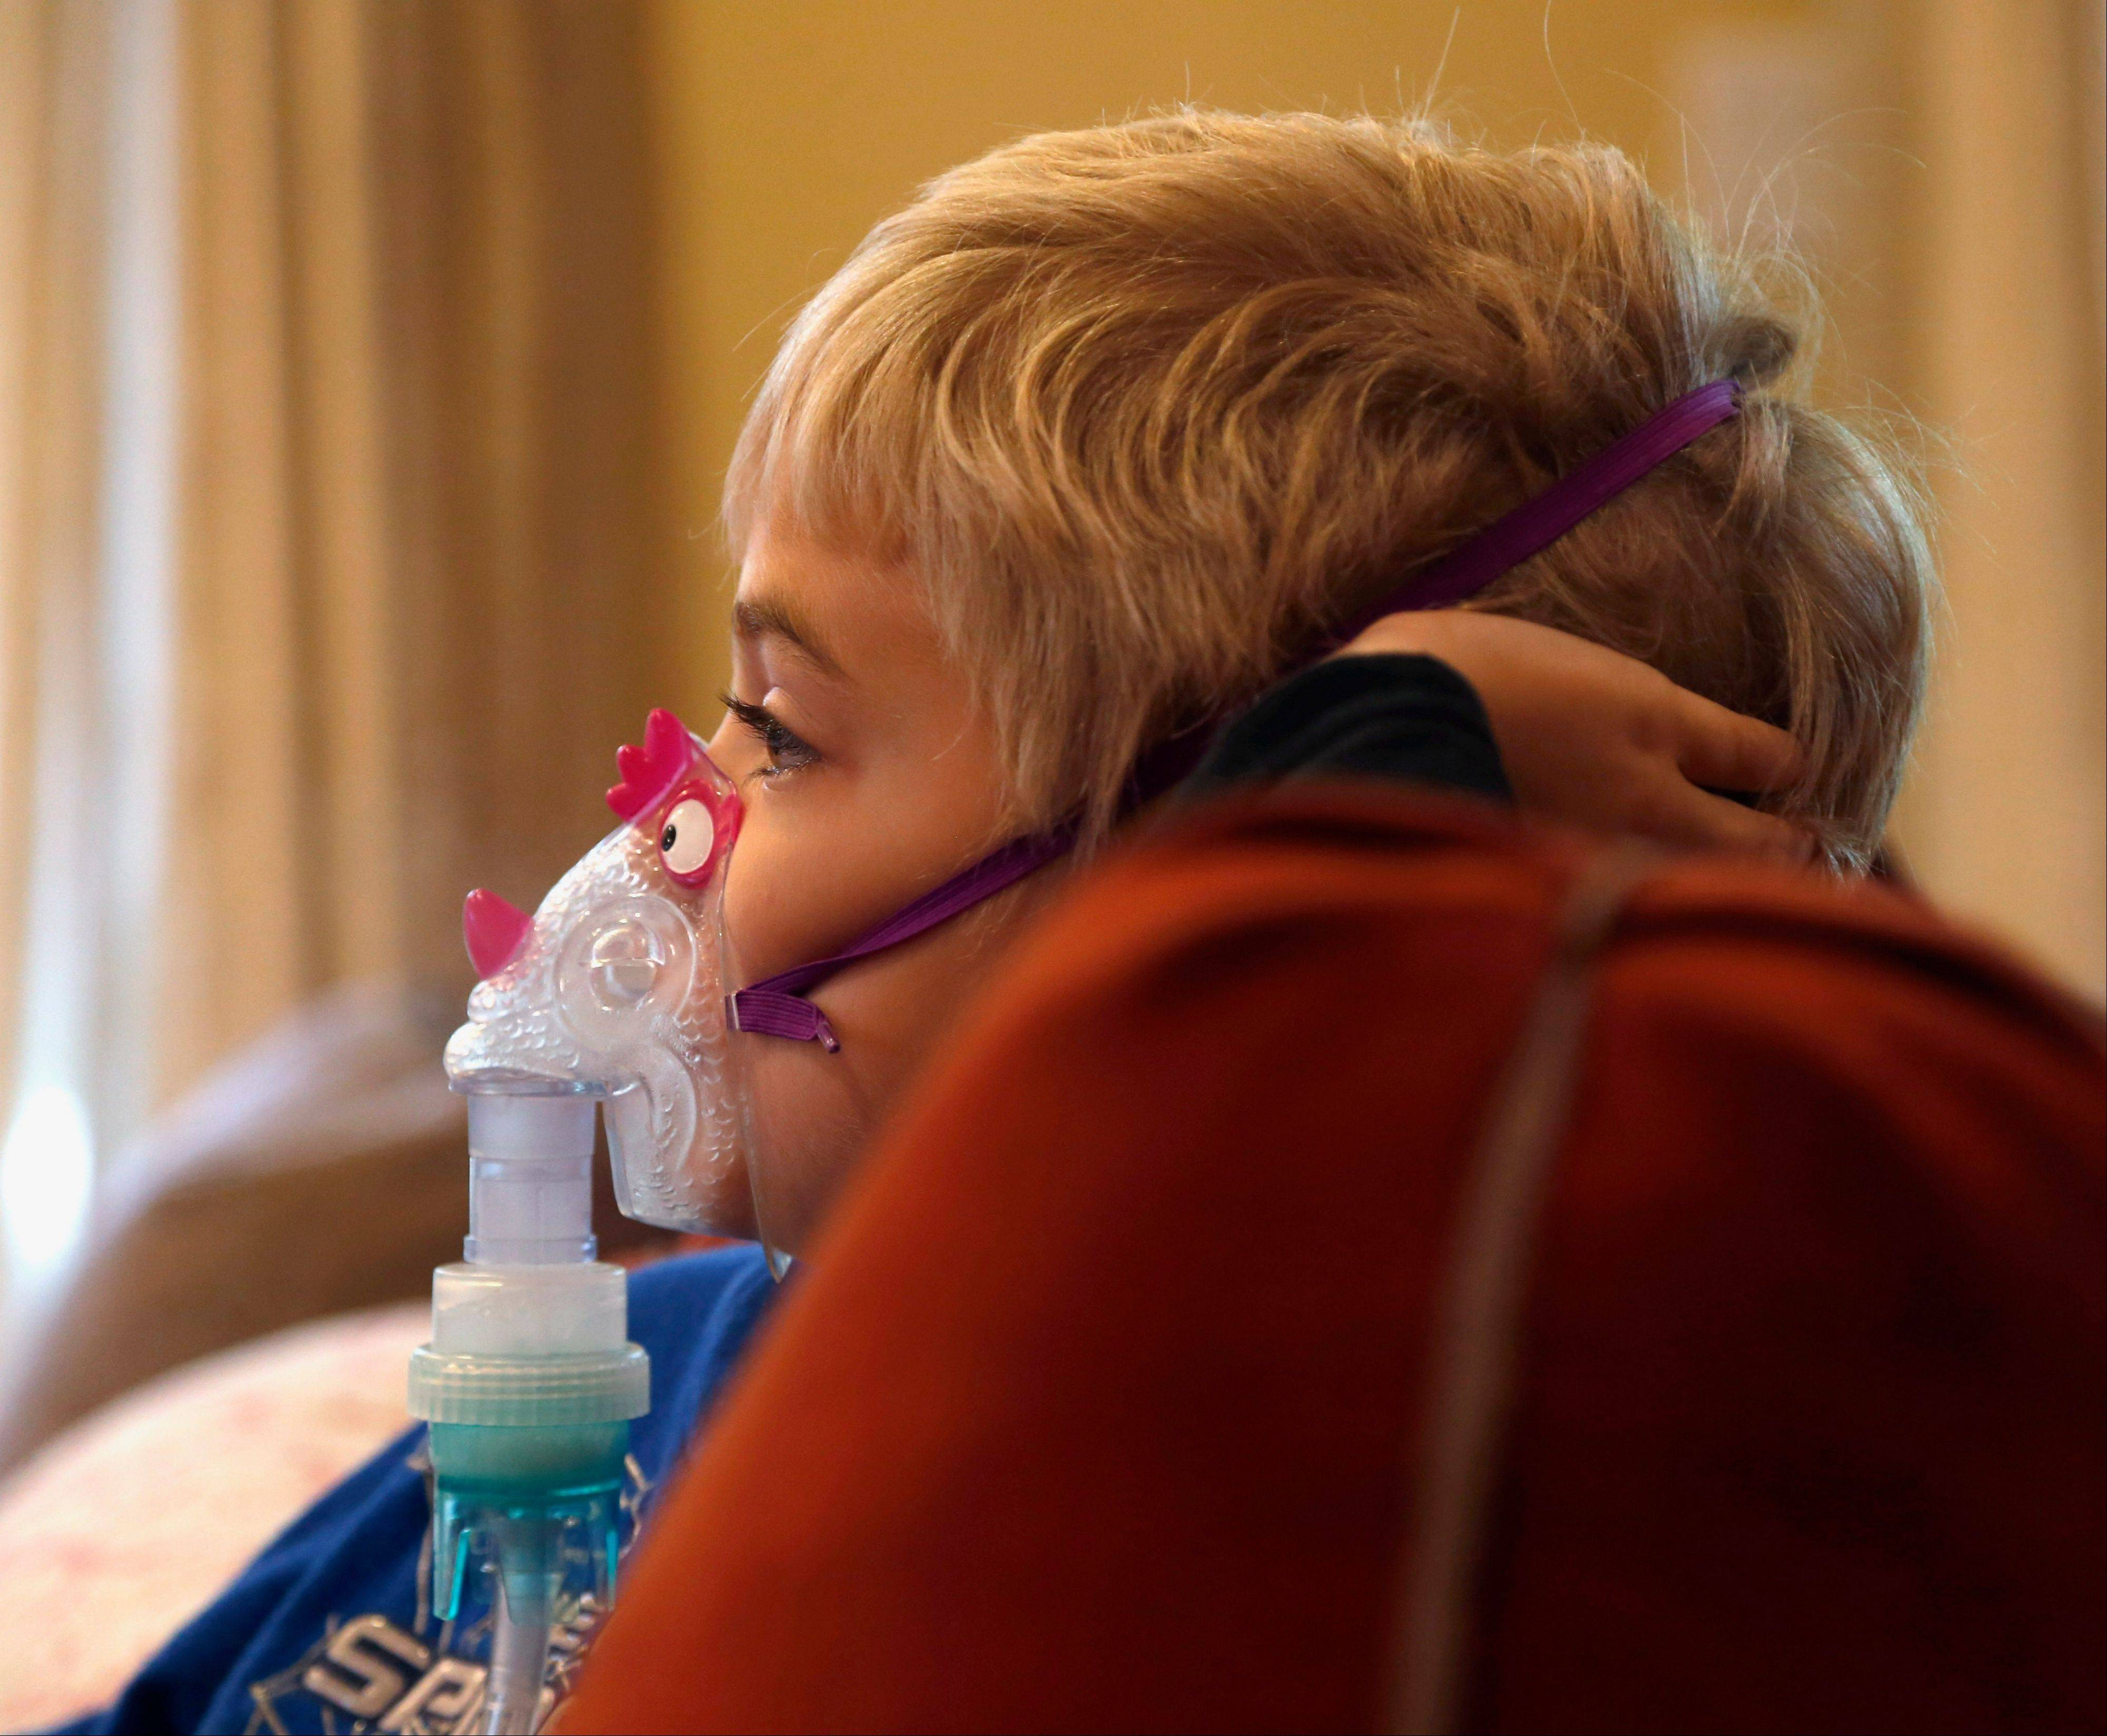 Carter Howard sits and watches a cartoon during his asthma treatment at his home in Northbrook. On the days when asthma gives Carter the most trouble, his mother is reminded how doctors at Rush University Medical Center had to stop submitting applications for research grants to study childhood asthma and other diseases and disorders due to the federal government shutdown.